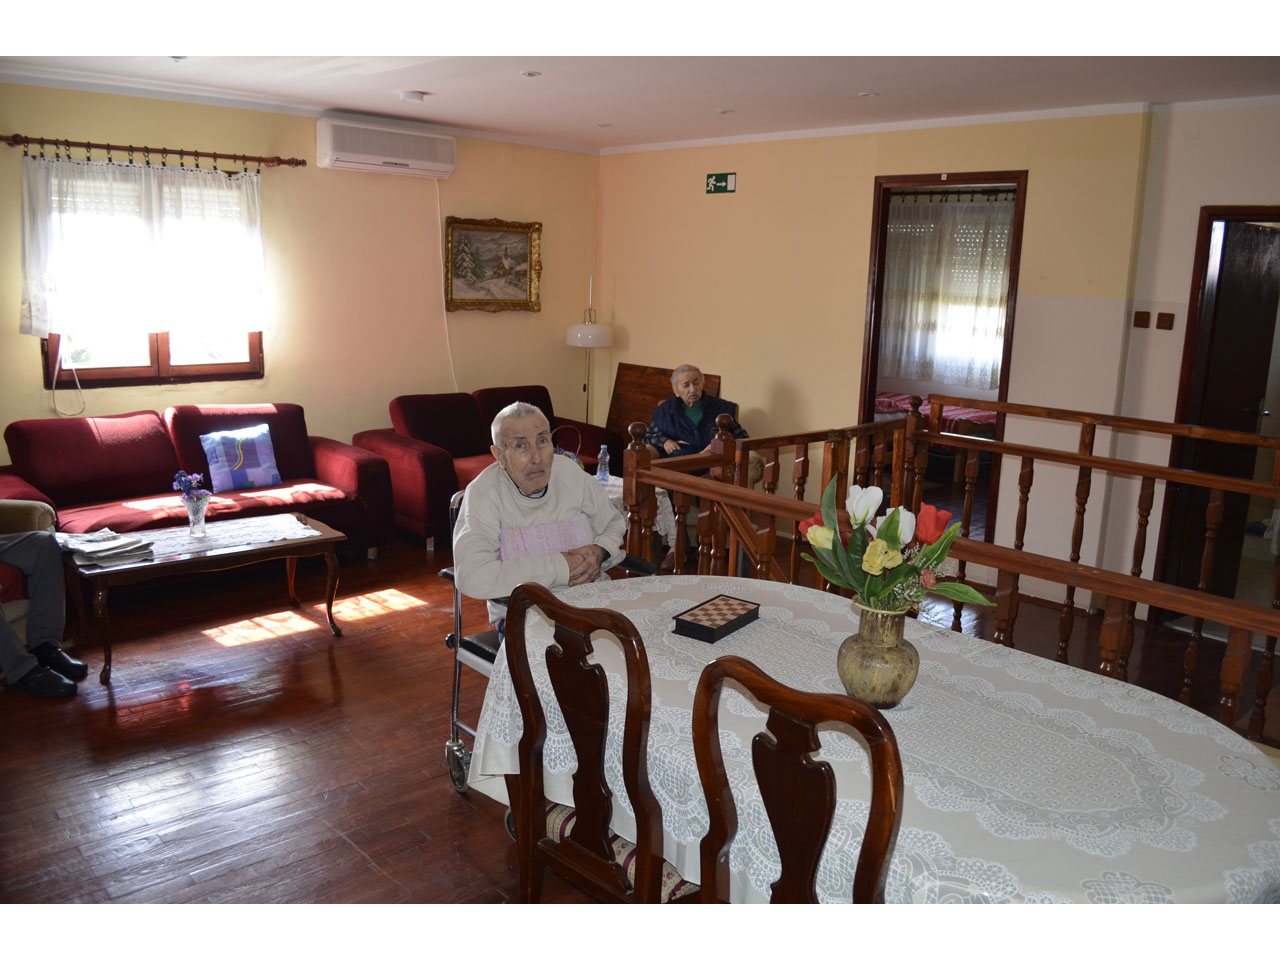 DOM ZA STARA LICA KRUNA Homes and care for the elderly Beograd